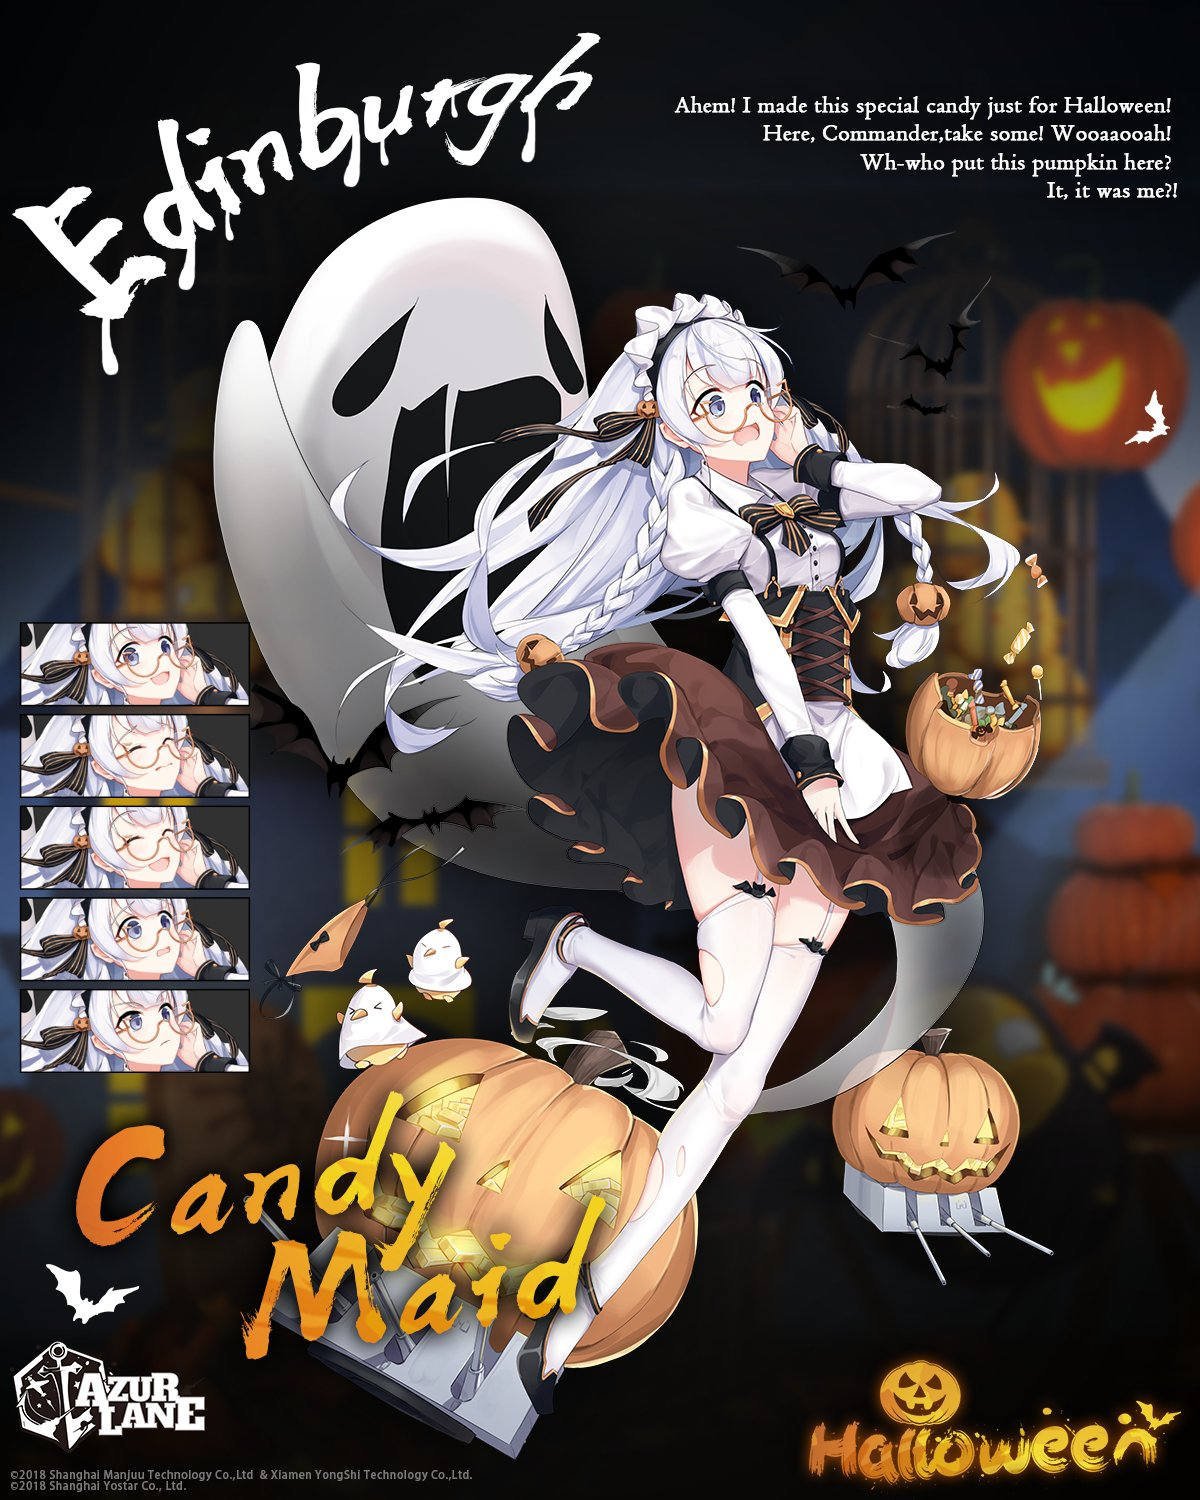 1girl alternate_costume apron azur_lane blue_eyes blush braid candy character_name closed_eyes copyright_name edinburgh_(azur_lane) edinburgh_(candy_maid)_(azur_lane) english_commentary english_text expressions eyebrows_visible_through_hair food french_braid ghost gold_bar halloween halloween_costume highres jack-o'-lantern jacknavy maid maid_apron maid_headdress official_art open_mouth pumpkin round_eyewear side_braids smile solo surprised thigh-highs white_apron white_hair